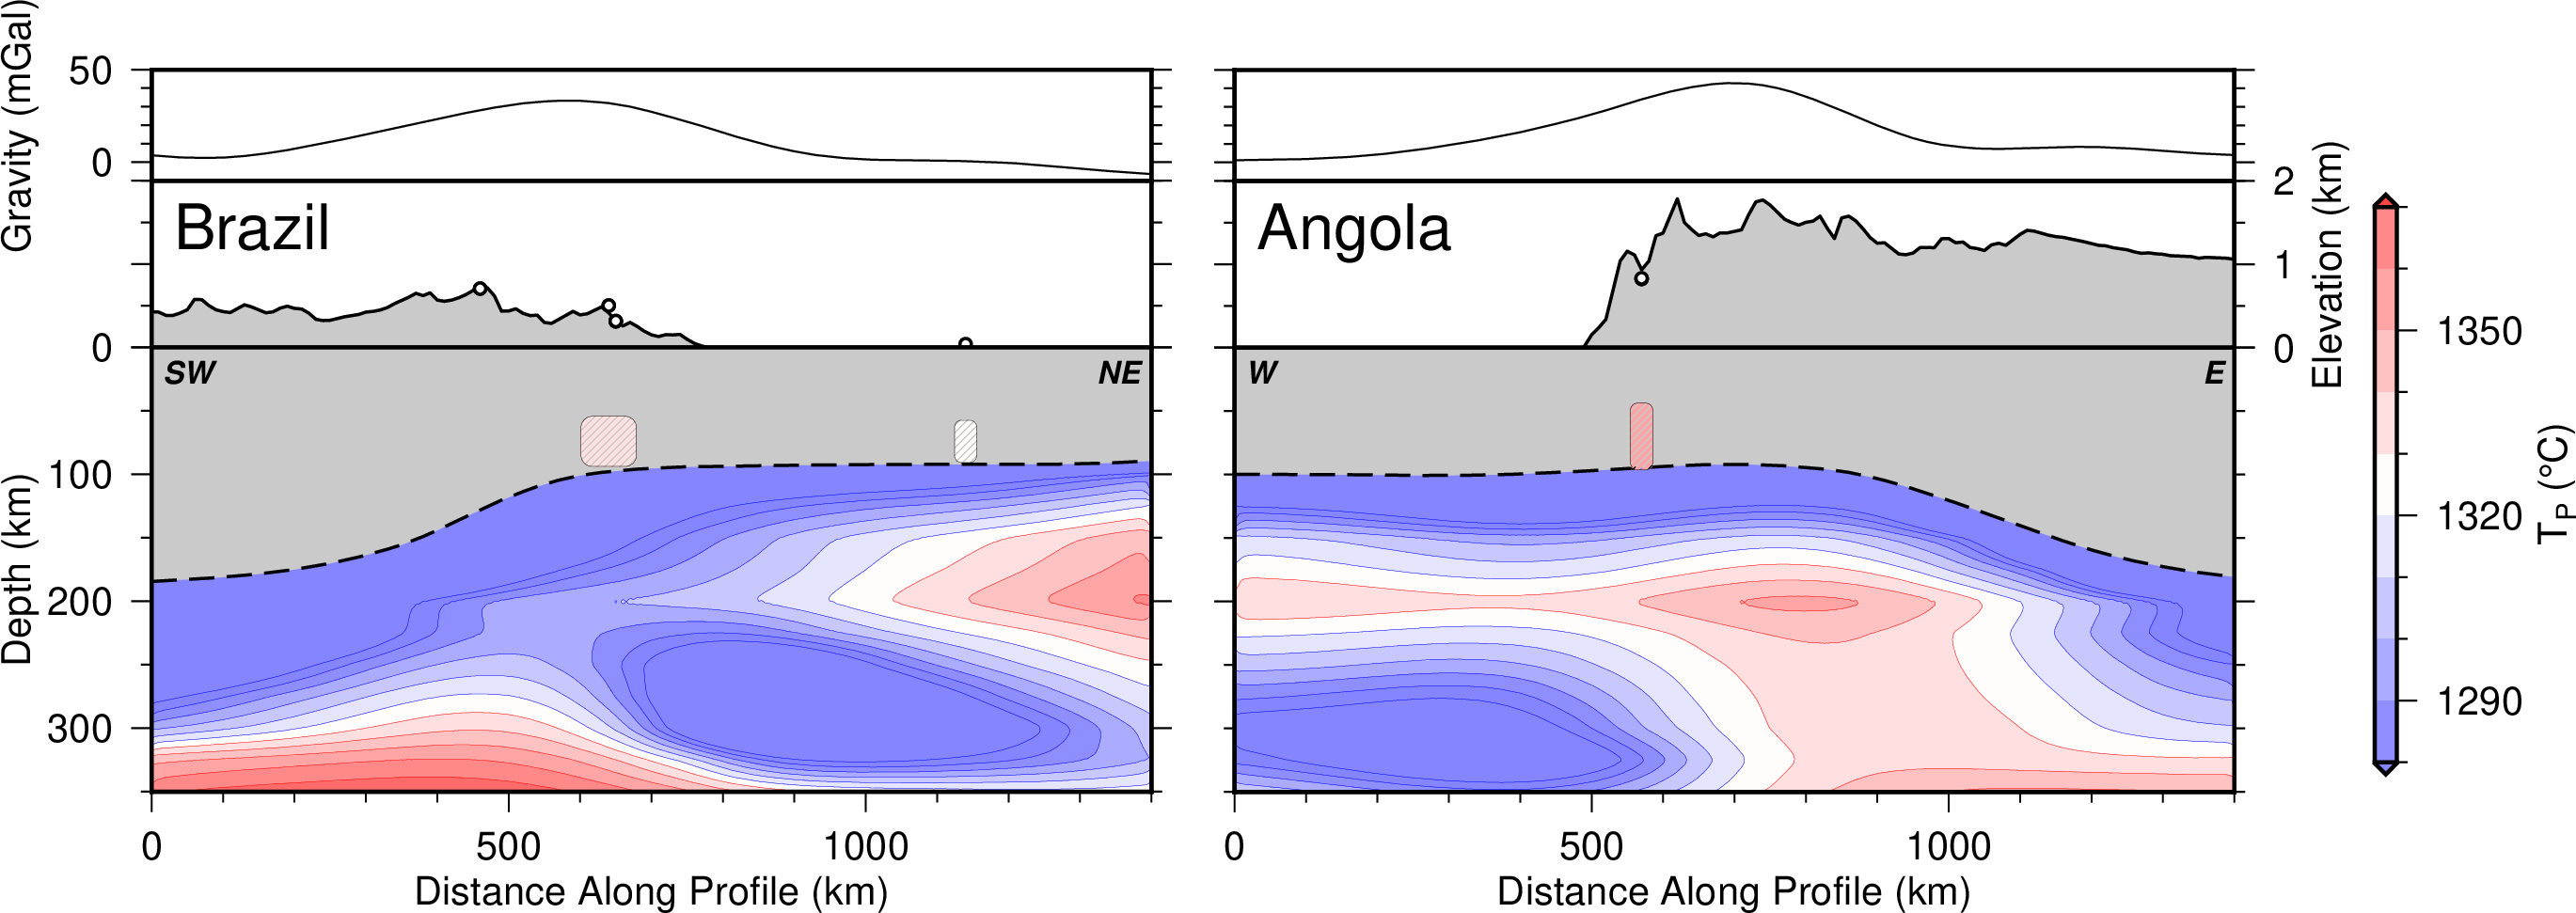 Image showing cross sections through the Earth's upper mantle below Brazil and Angola. Grey polygons indicate the surface topography and depth to lithosphere boundary, showing thinning beneath the two domes. Hot cold colours show the temperature anomalies beneath the surface, and coloured envelopes within the grey lithosphere indicate the depth and temperature of melting. Image adapted after Klöcking et al. 2020